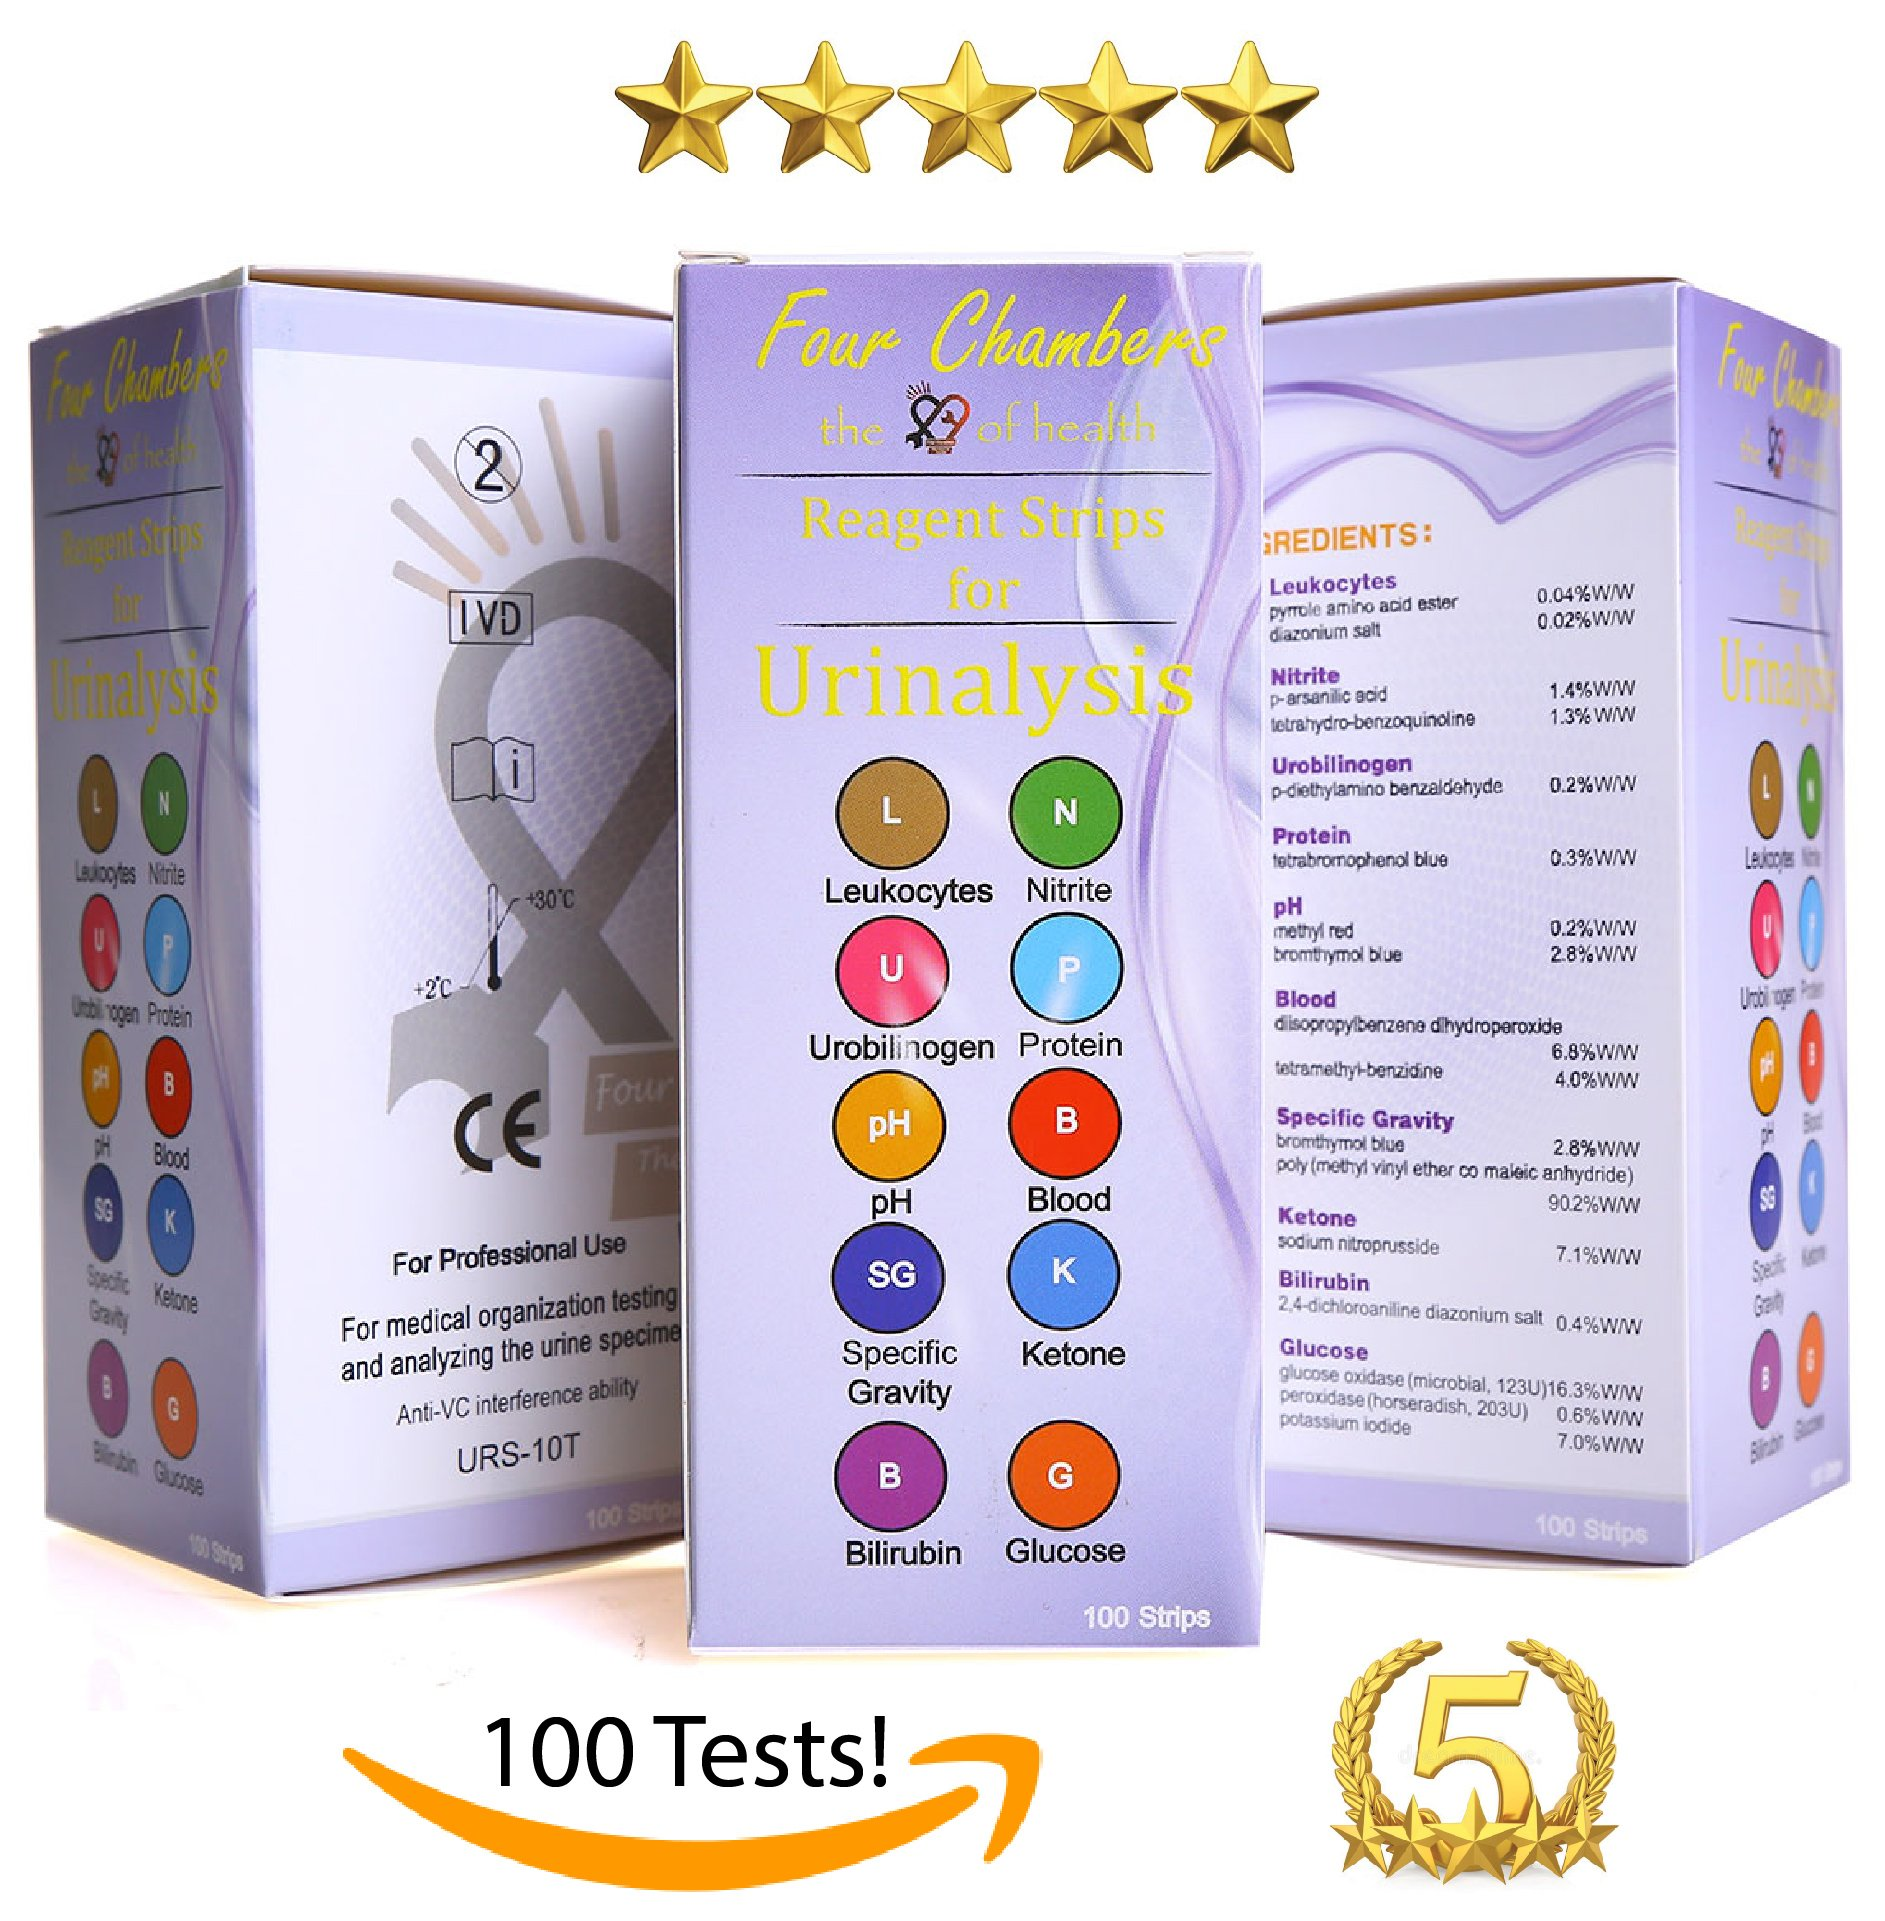 Urine Test Strips - Urinalysis Test Strips - Urinary Tract Infection Strips  (UTI): MEGA Pack (100 Tests) - Easy - Instant Results! on Galleon  Philippines